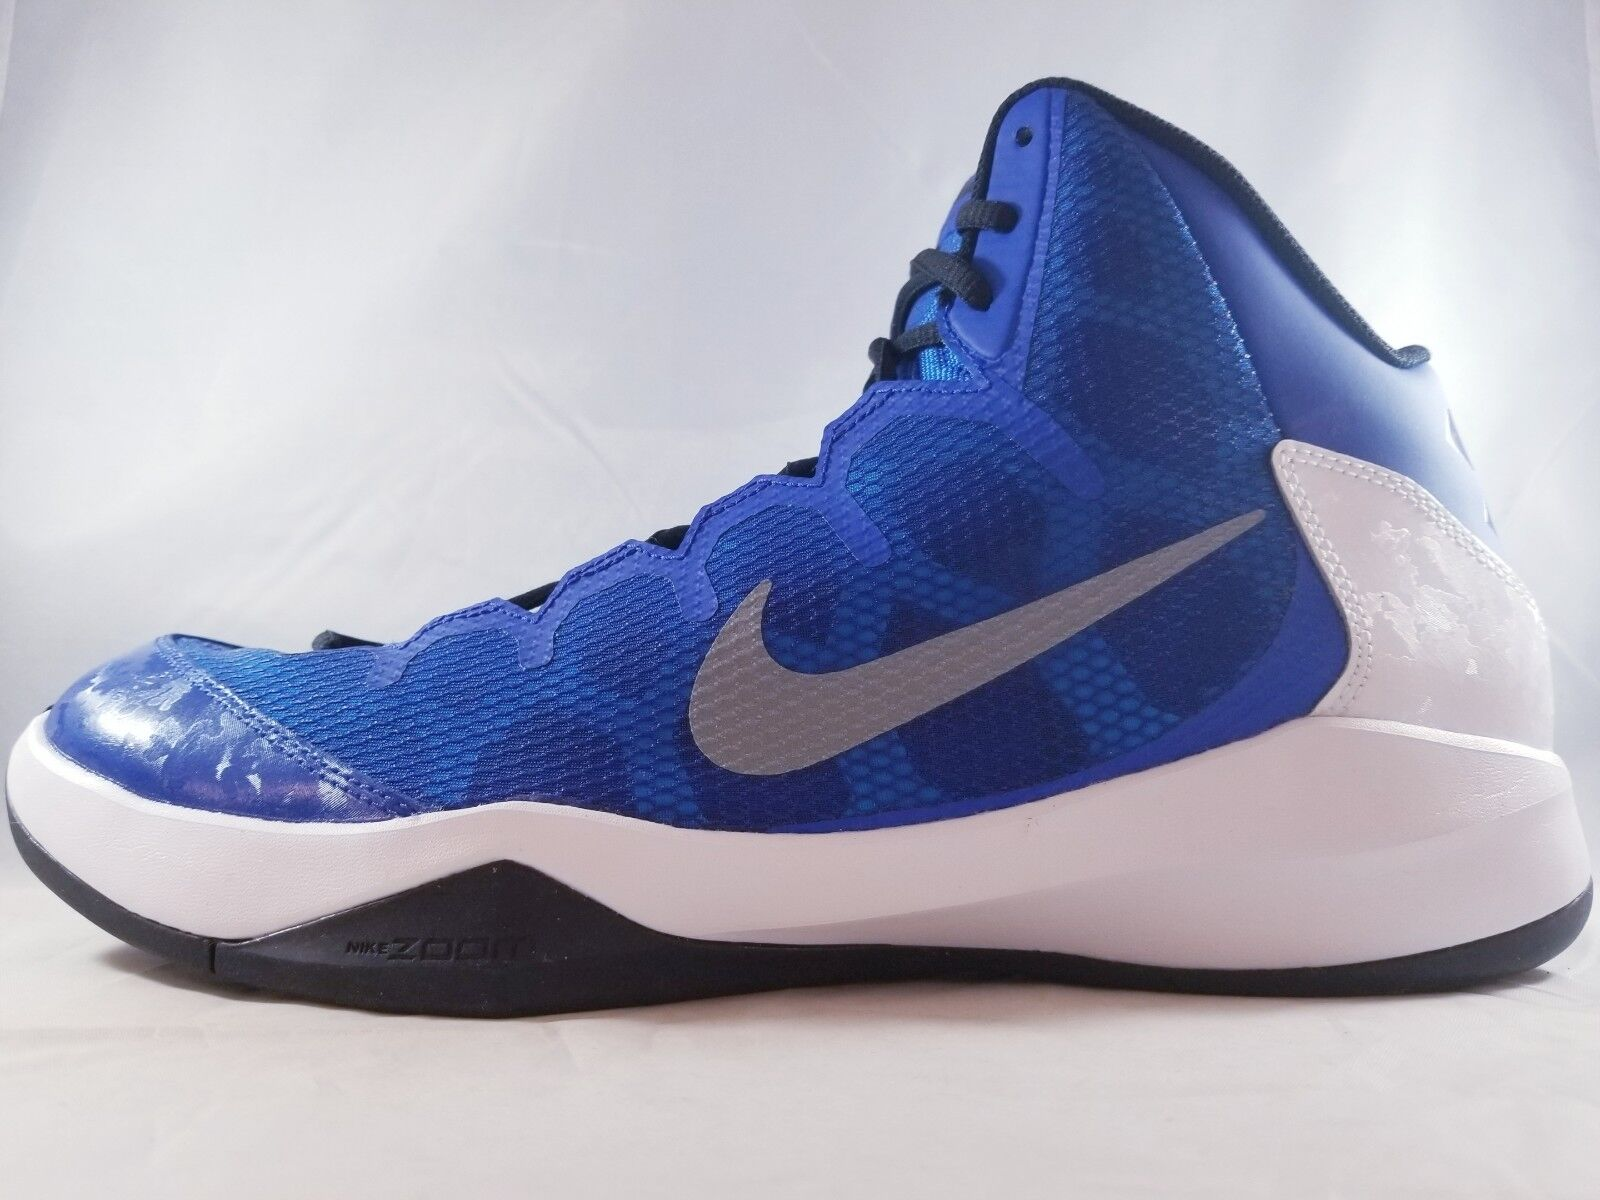 Nike Zoom Without a Doubt Men's Basketball shoes 749432 401 401 401 Size 14 3a668b